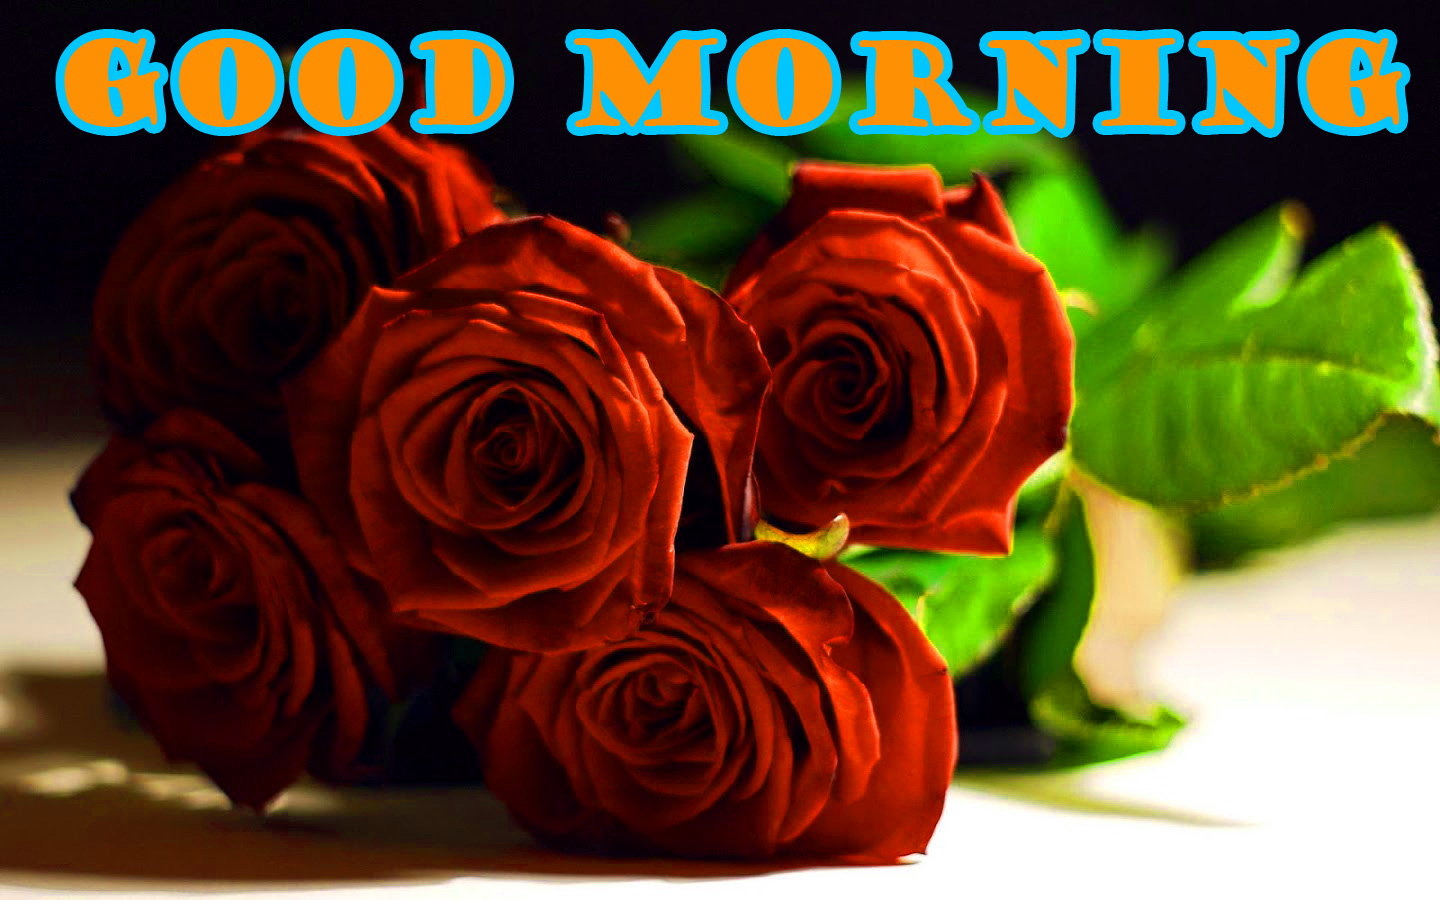 Good Morning Red Rose Wallpaper Pictures Images HD Download